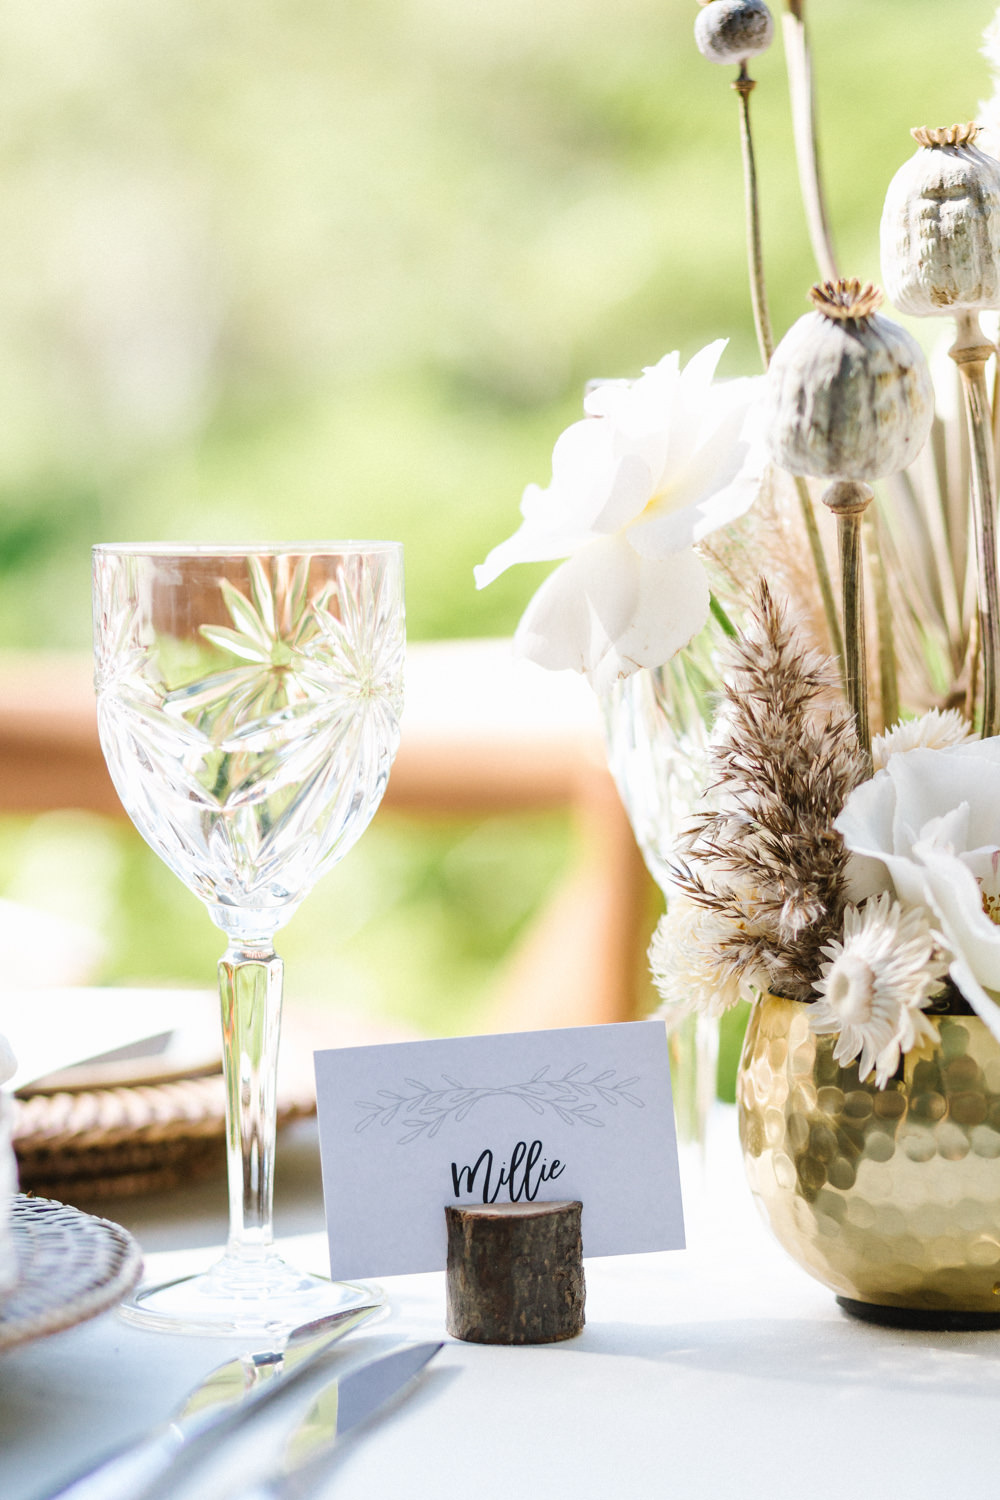 Log Slice Table Name Card Place Boconnoc Wedding Debs Alexander Photography